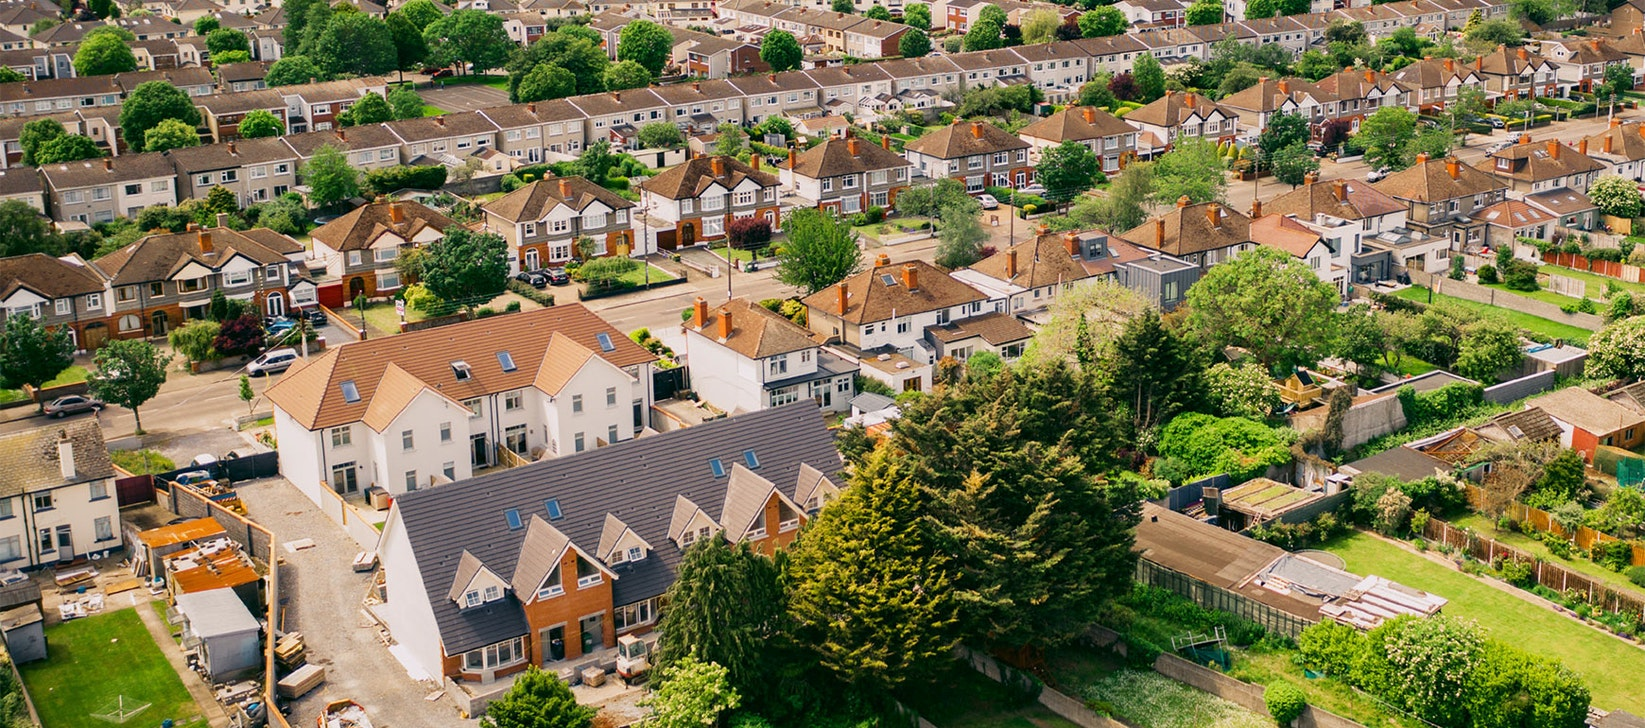 A well-functioning housing market is key to Dublin's competitiveness